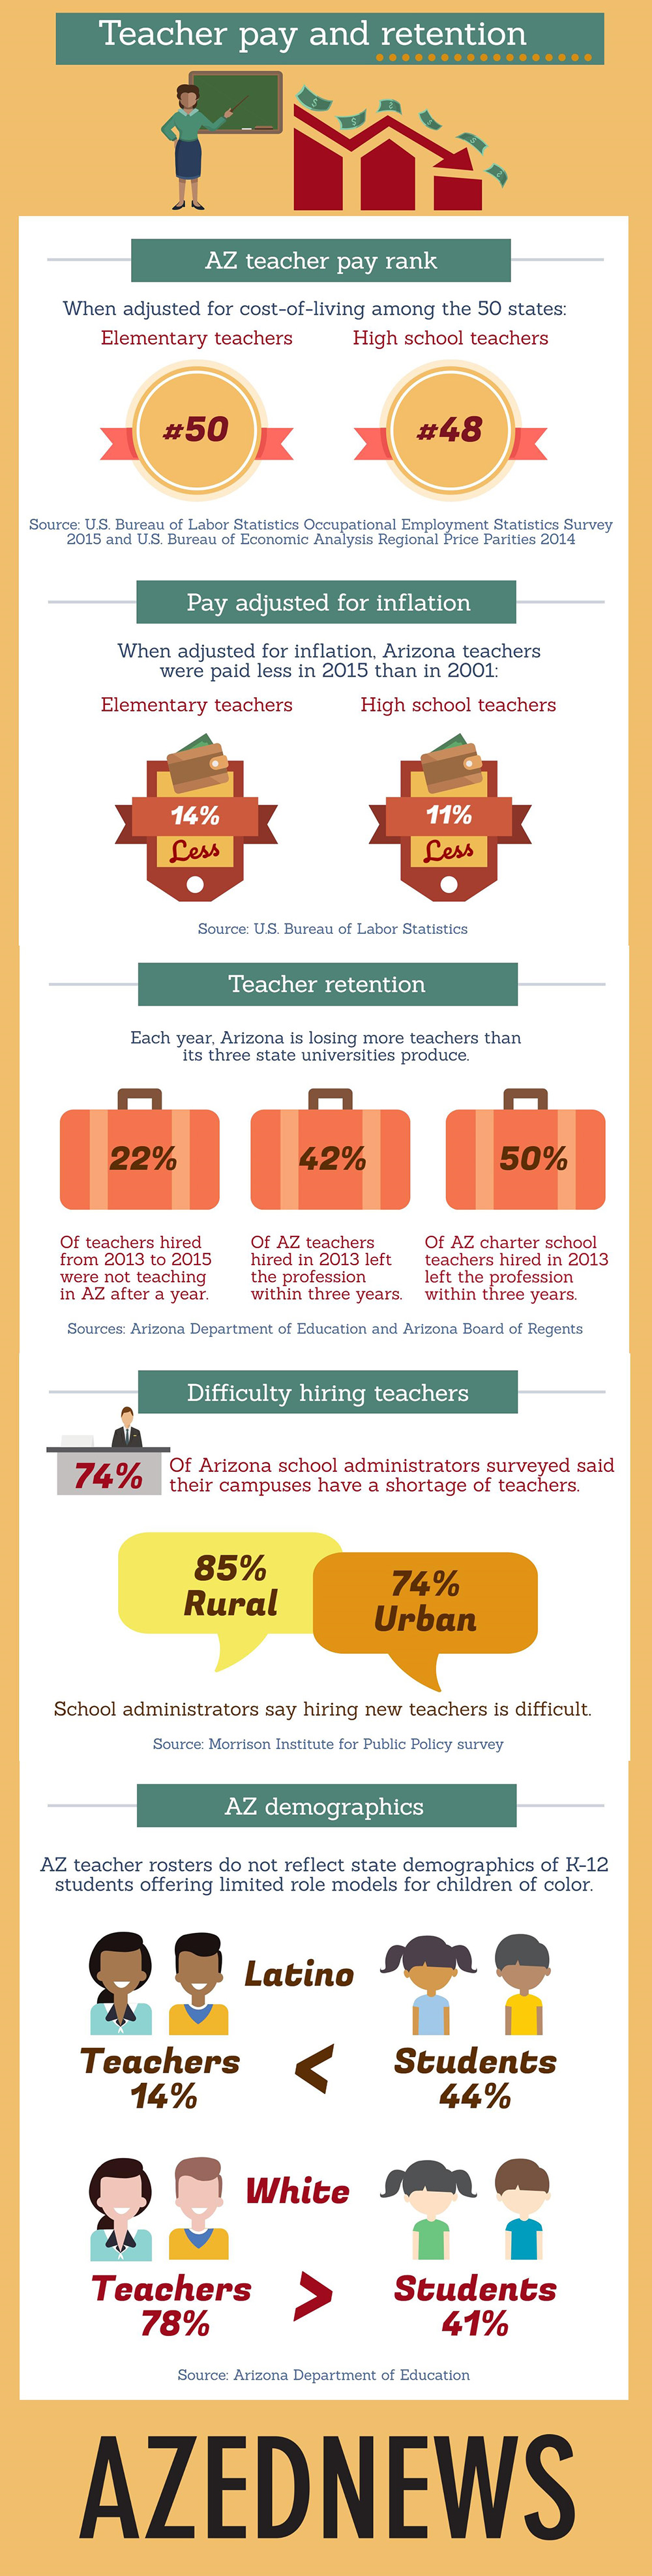 Low pay is key in teacher shortage crisis AZEdNewsTeacherPayAndRetentionInfographic